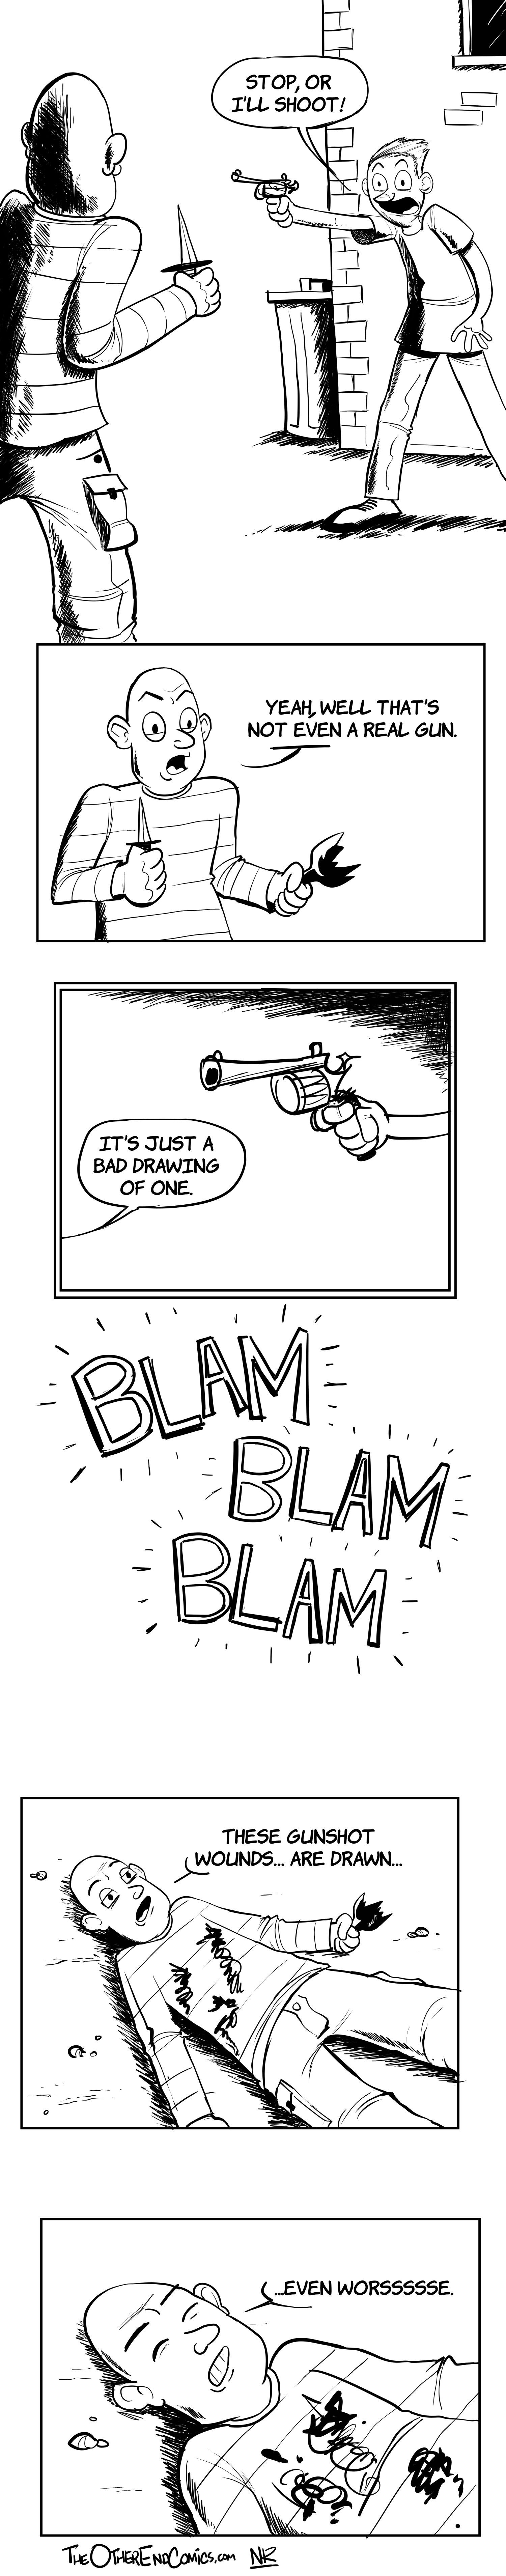 Twist! EVERYTHING in this comic is badly drawn!